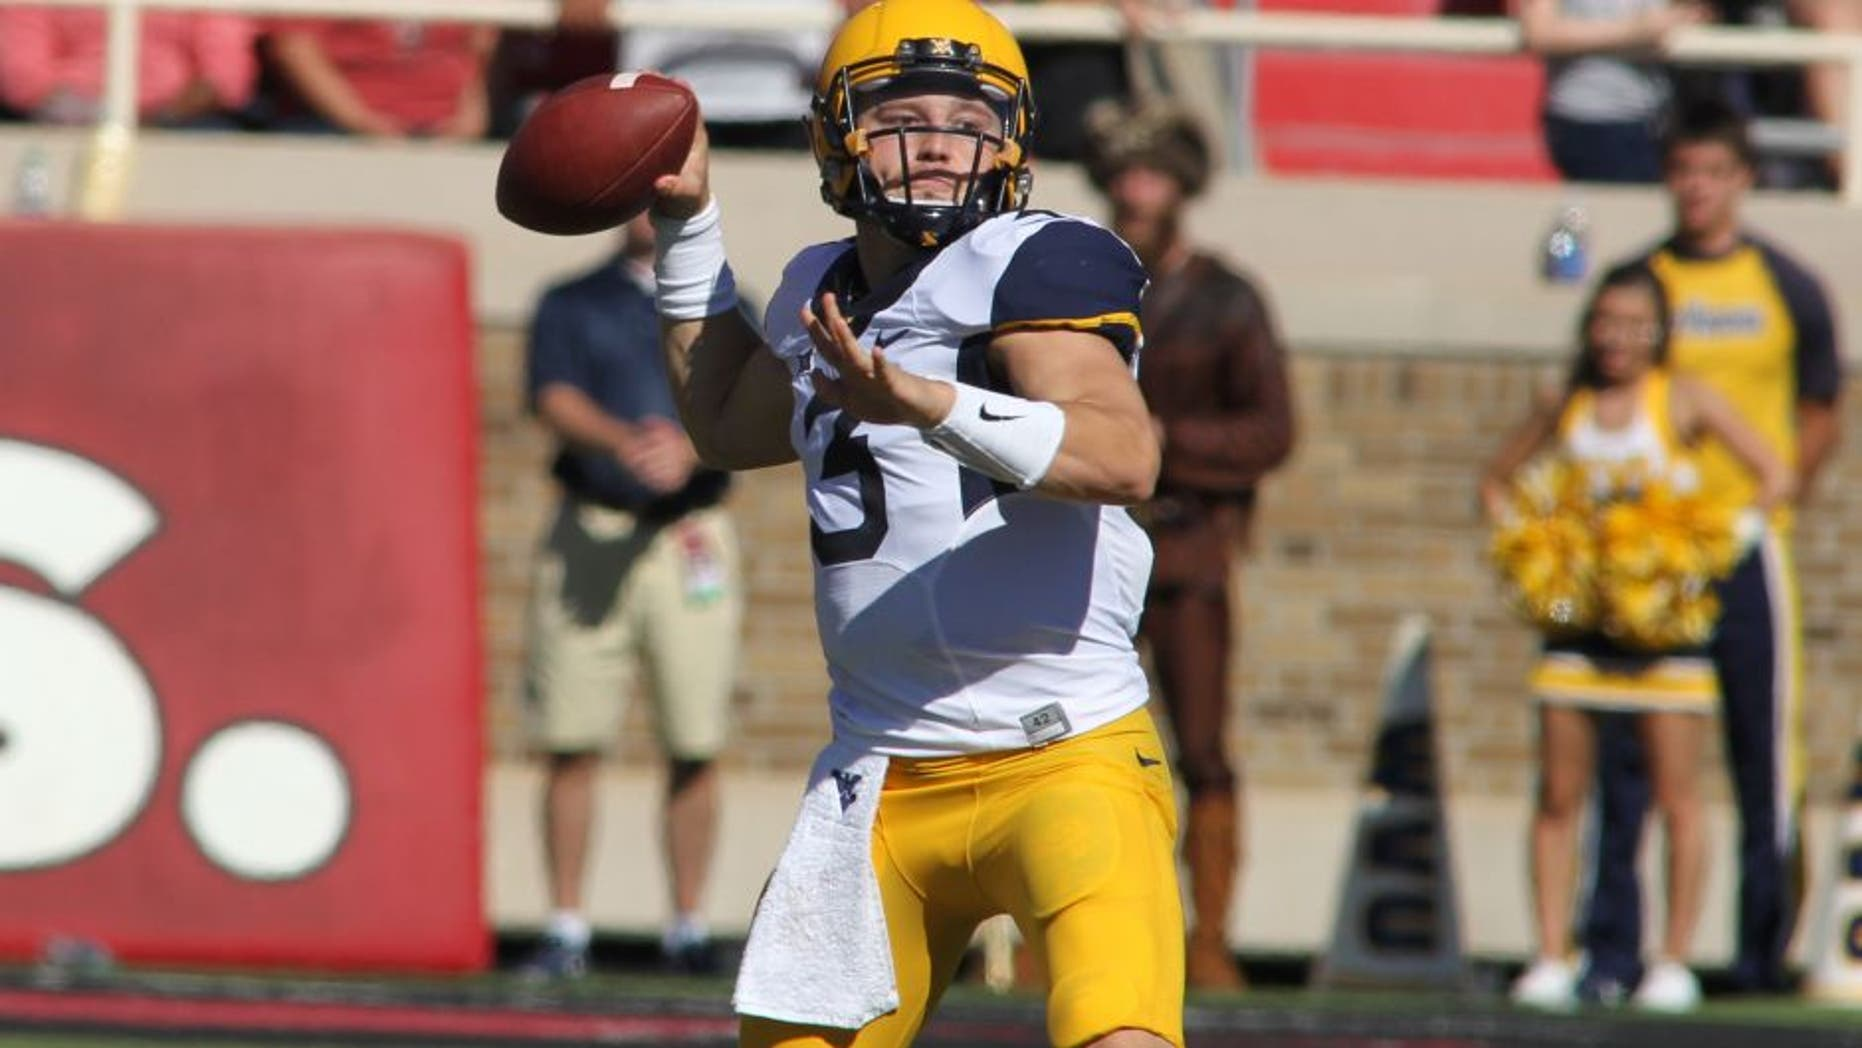 Oct 15, 2016; Lubbock, TX, USA; West Virginia Mountaineers quarterback Skyler Howard (3) prepares to make a throw against the Texas Tech Red Raiders in the first half at Jones AT&T Stadium. Mandatory Credit: Michael C. Johnson-USA TODAY Sports